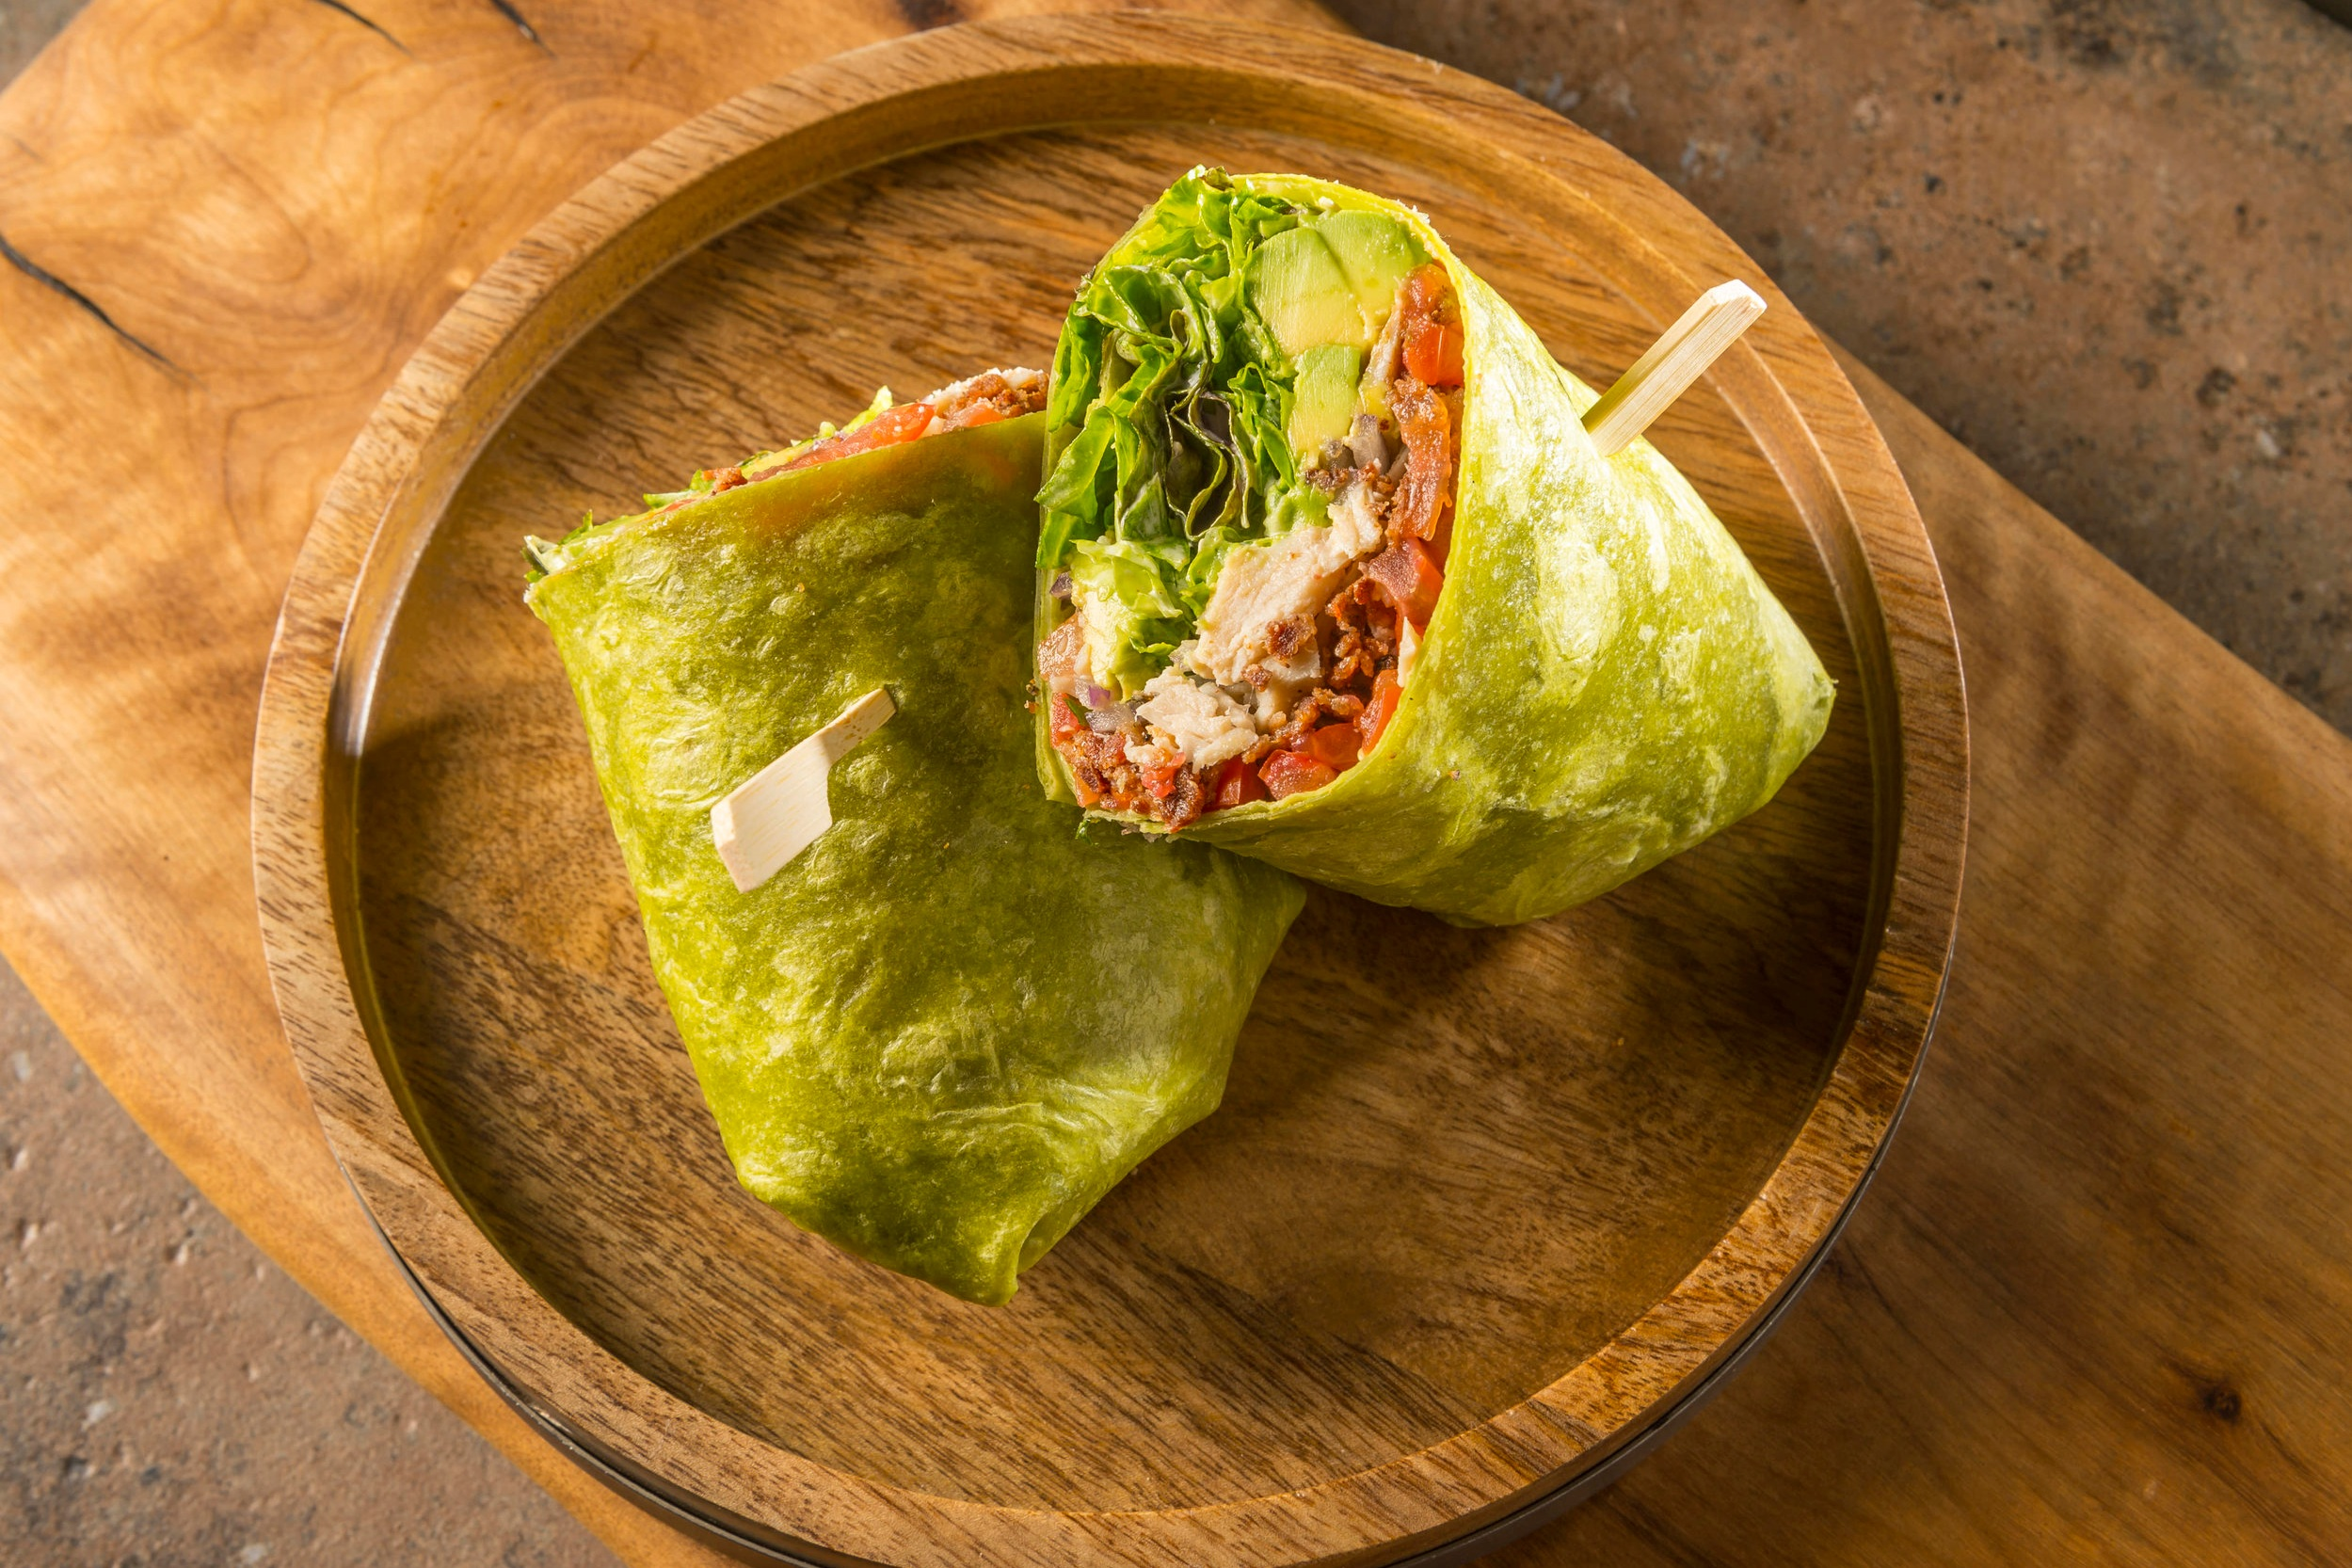 LUNCH/DINNER - 11AM - CLOSE, EVERYDAYFRESH AND DELICIOUS OPTIONS